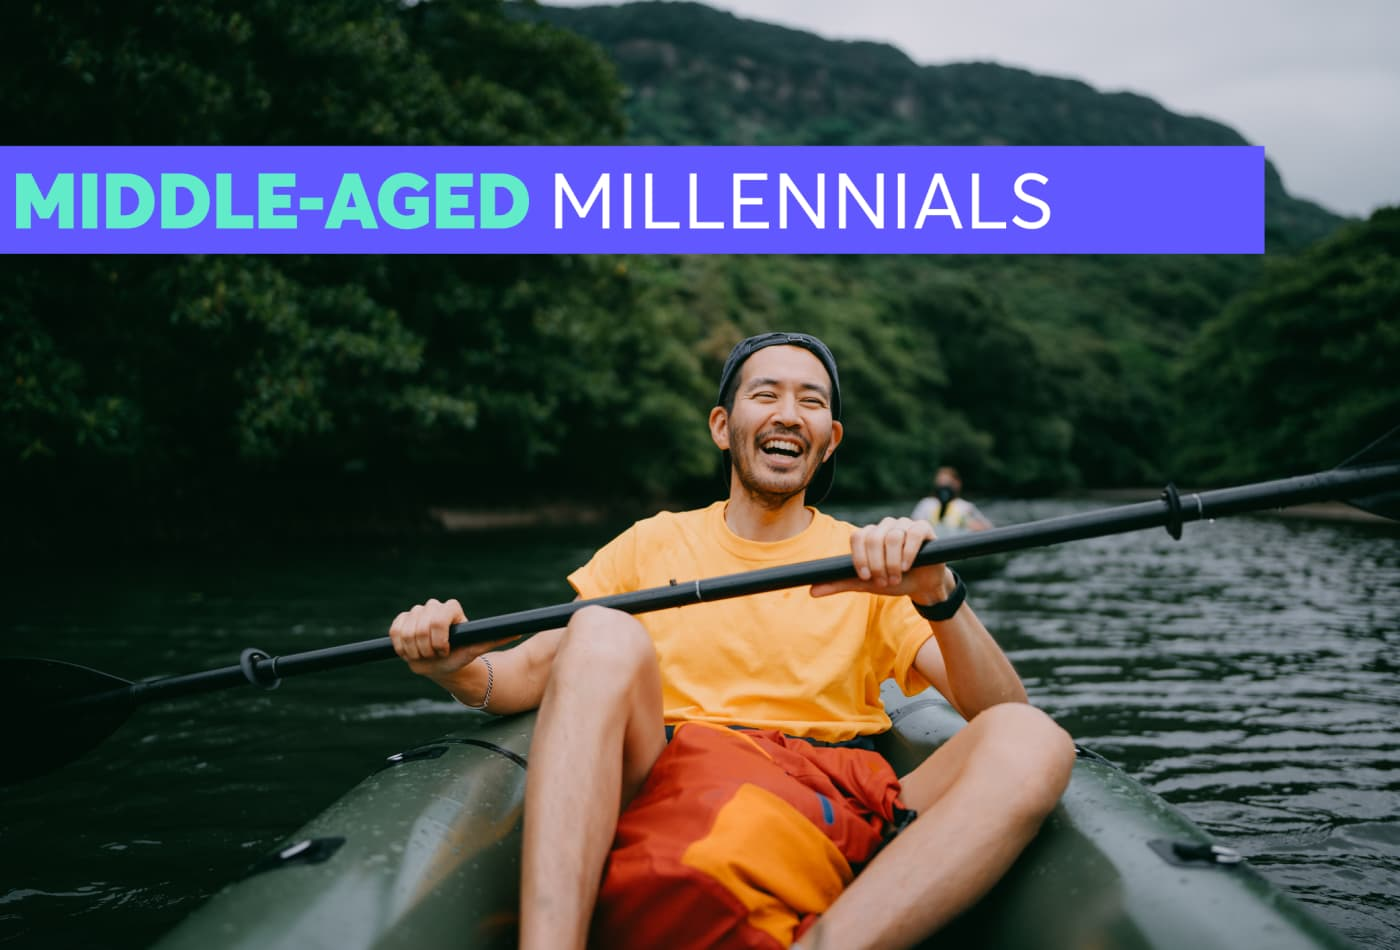 Despite everything, most older millennials are content with how their lives turned out